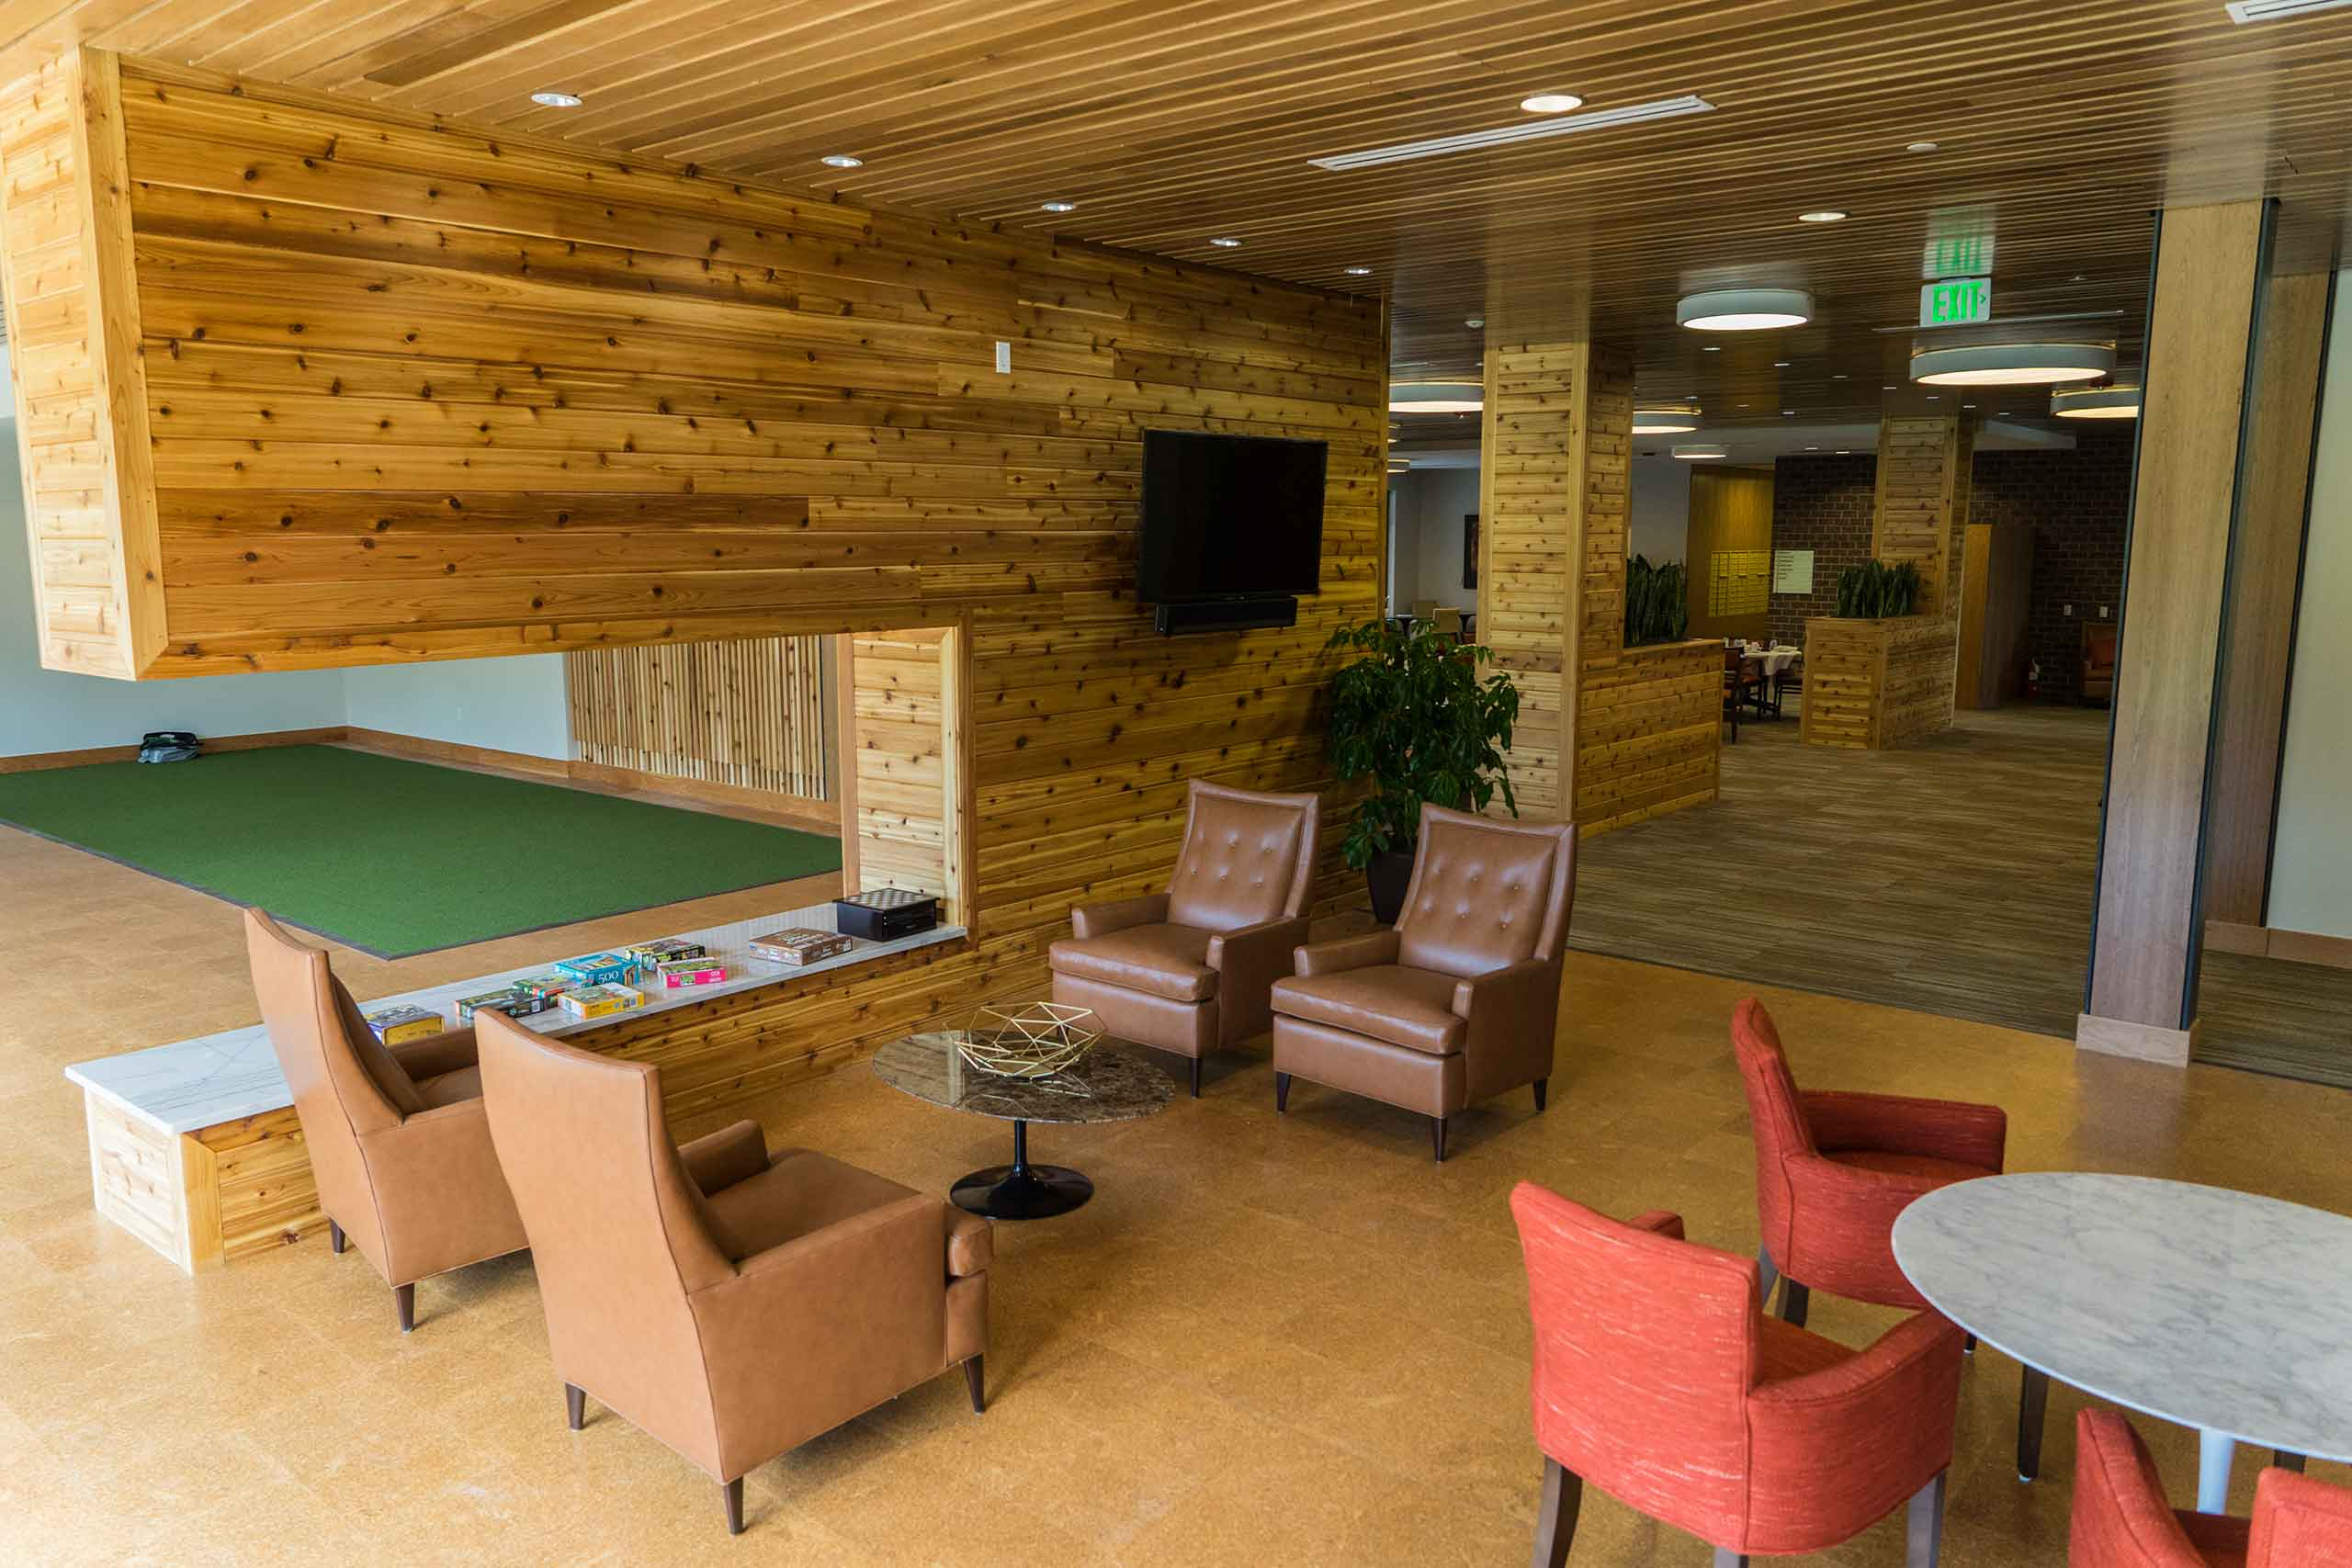 Silvercrest-at-College-View-Game-Room